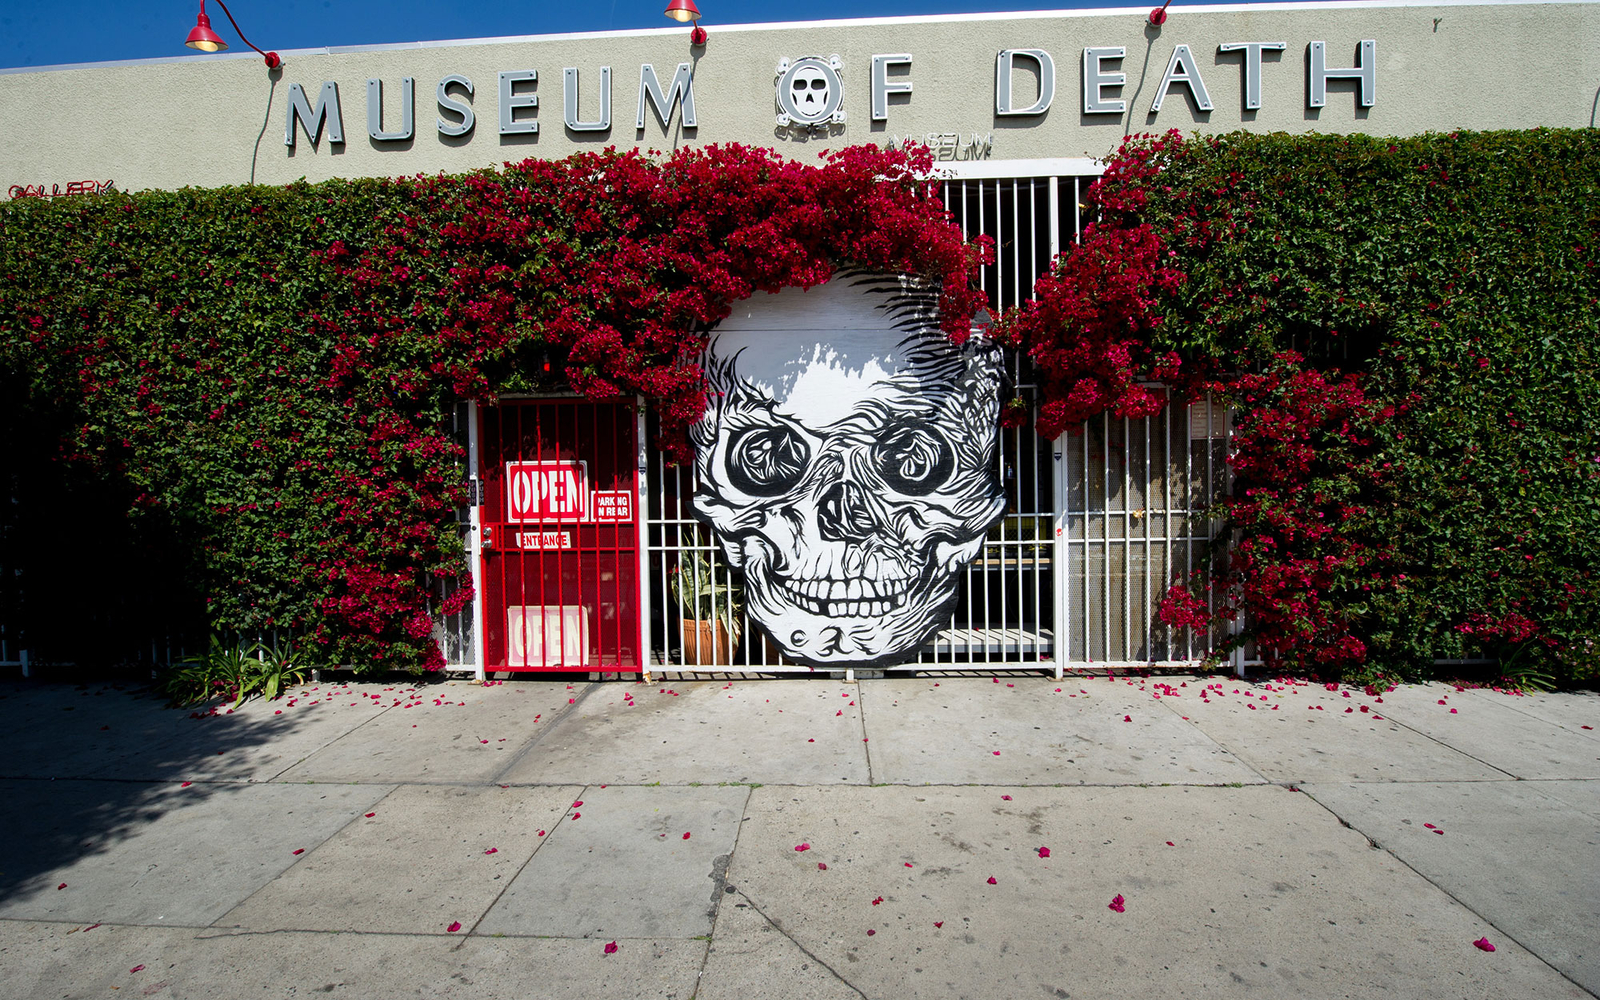 Location List Museum-of-death